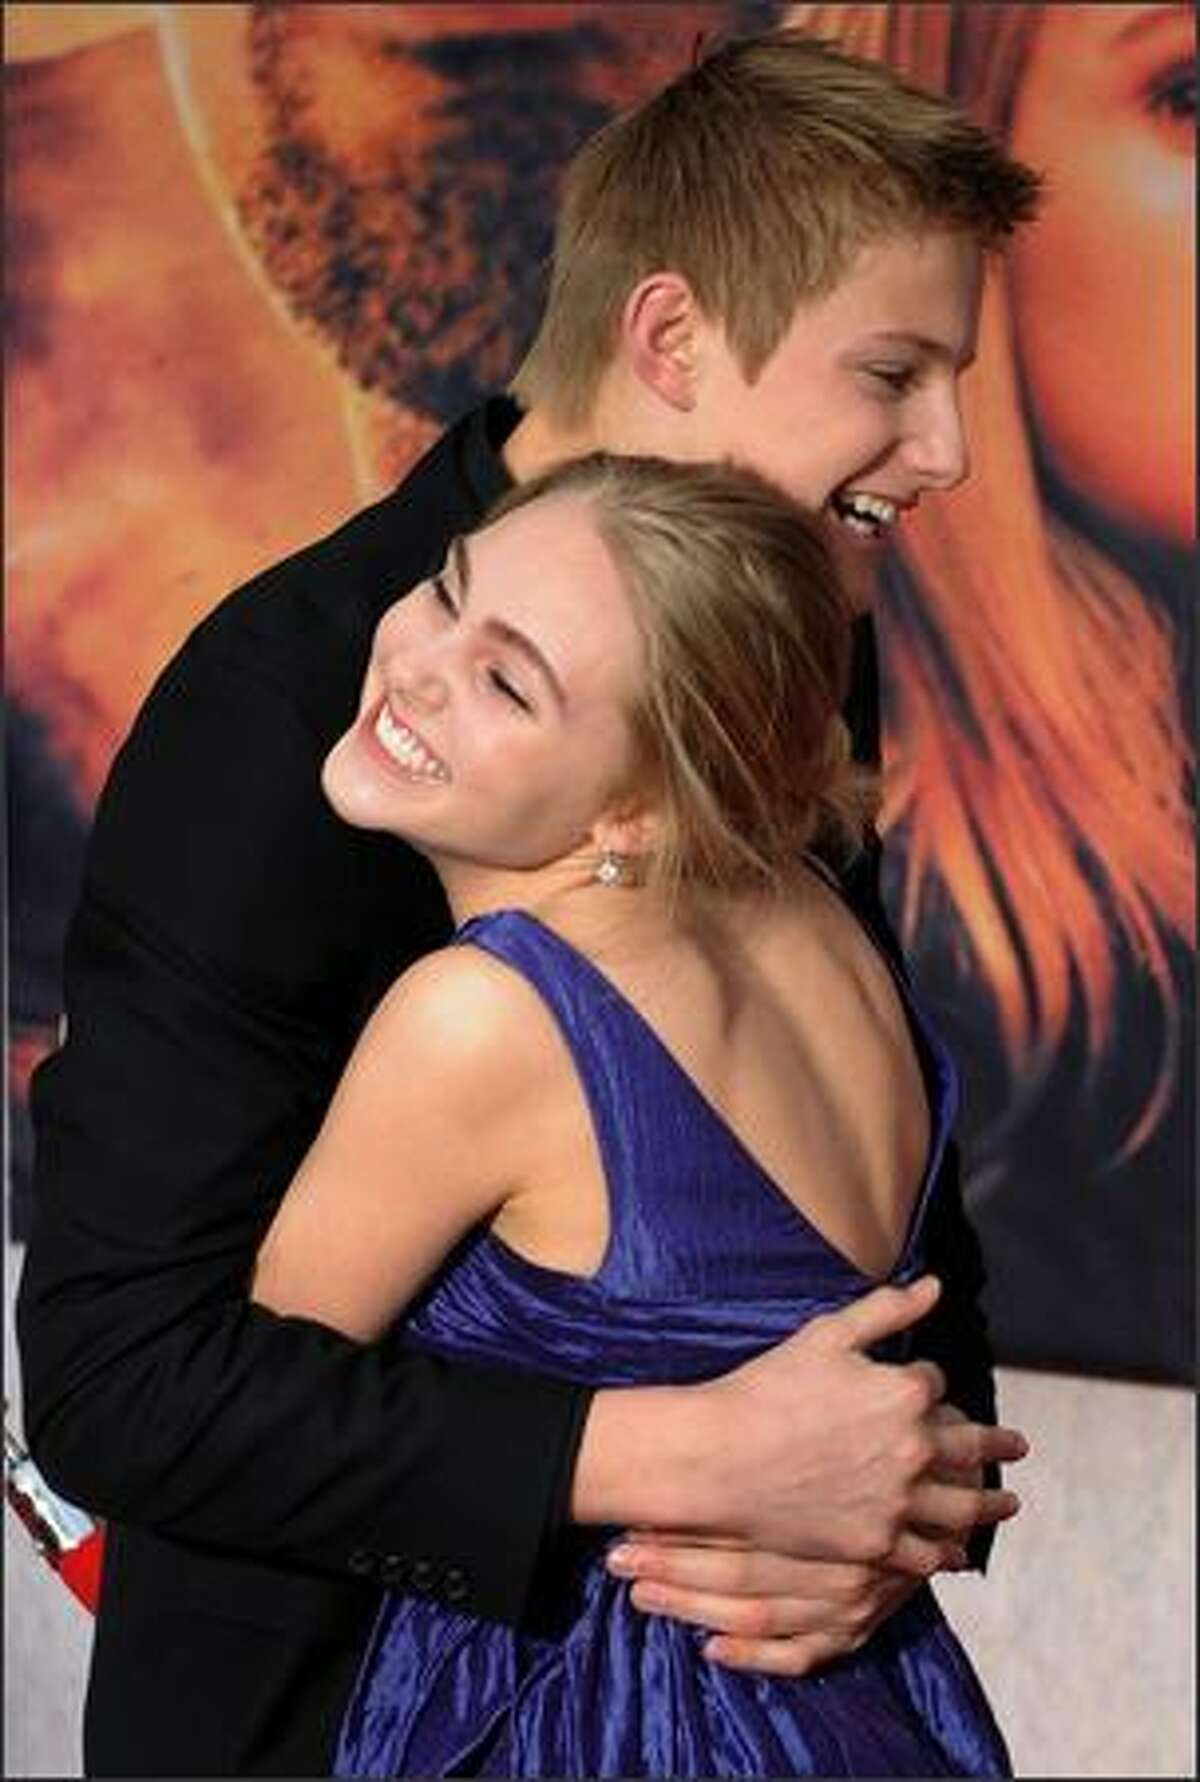 """Actor Alexander Ludwig hugs co-star AnnaSophia Robb as they arrive for the world premiere of the Disney film """"Race to Witch Mountain"""" at the El Capitan theatre in Los Angeles. Ludwig plays the role of """"Seth"""" and AnnaSophia as """"Sara"""" in the film about two teenagers who team up with a Las Vegas taxi driver to save the world by unravelling the secrets of Witch Mountain."""